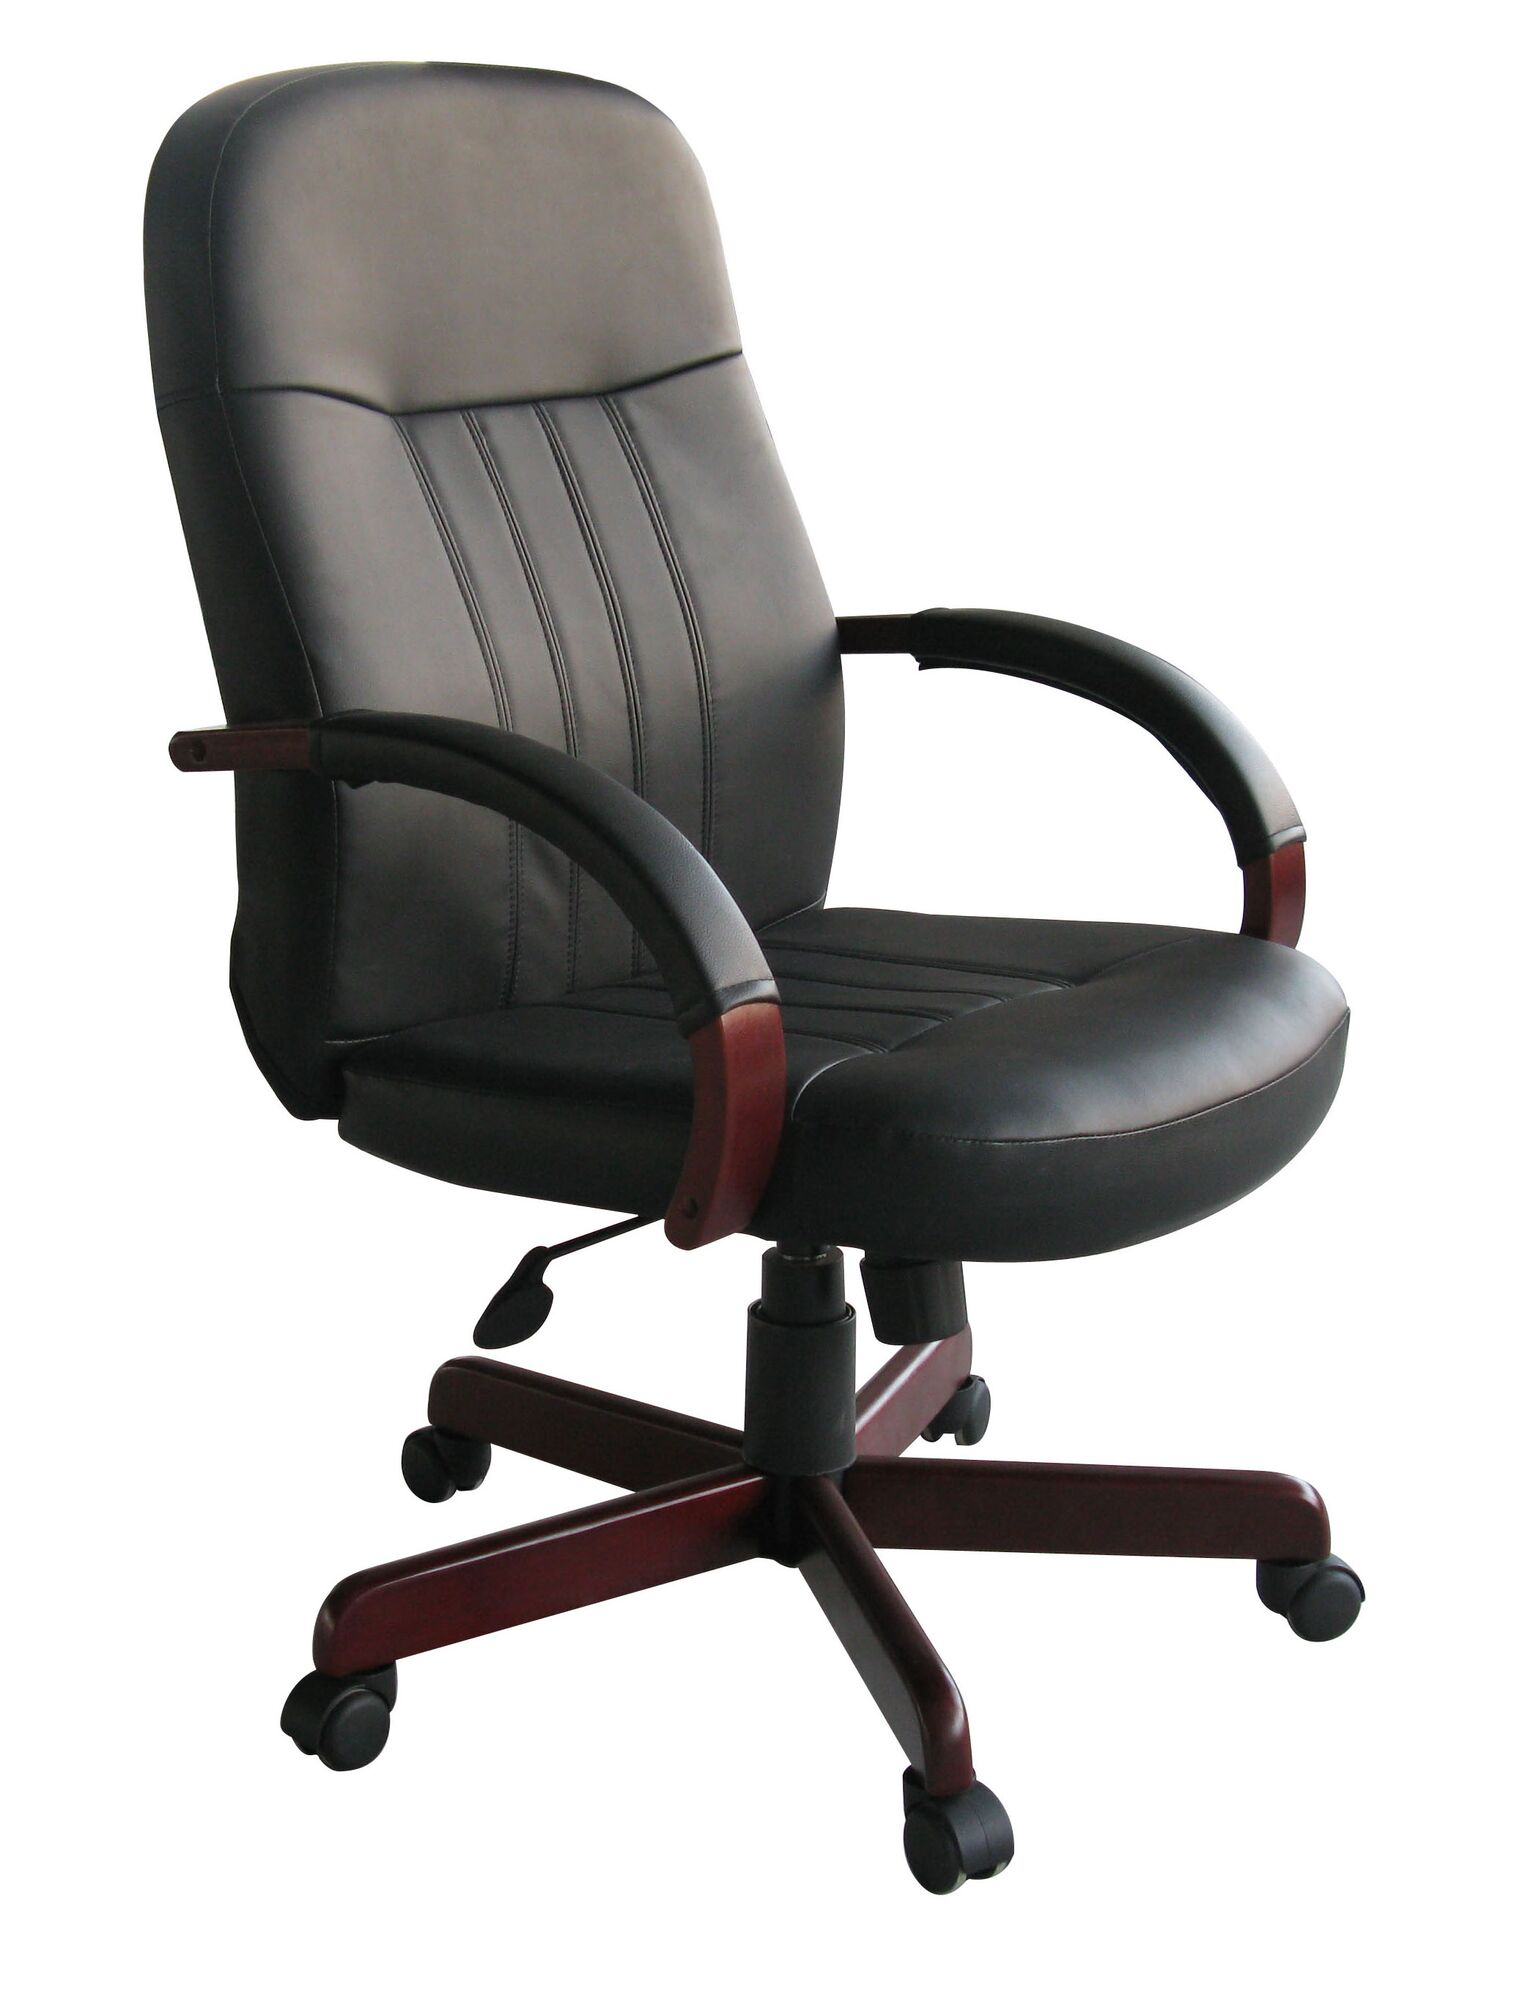 Boss High Back Leather Executive Chair - B8376 - Mahogany